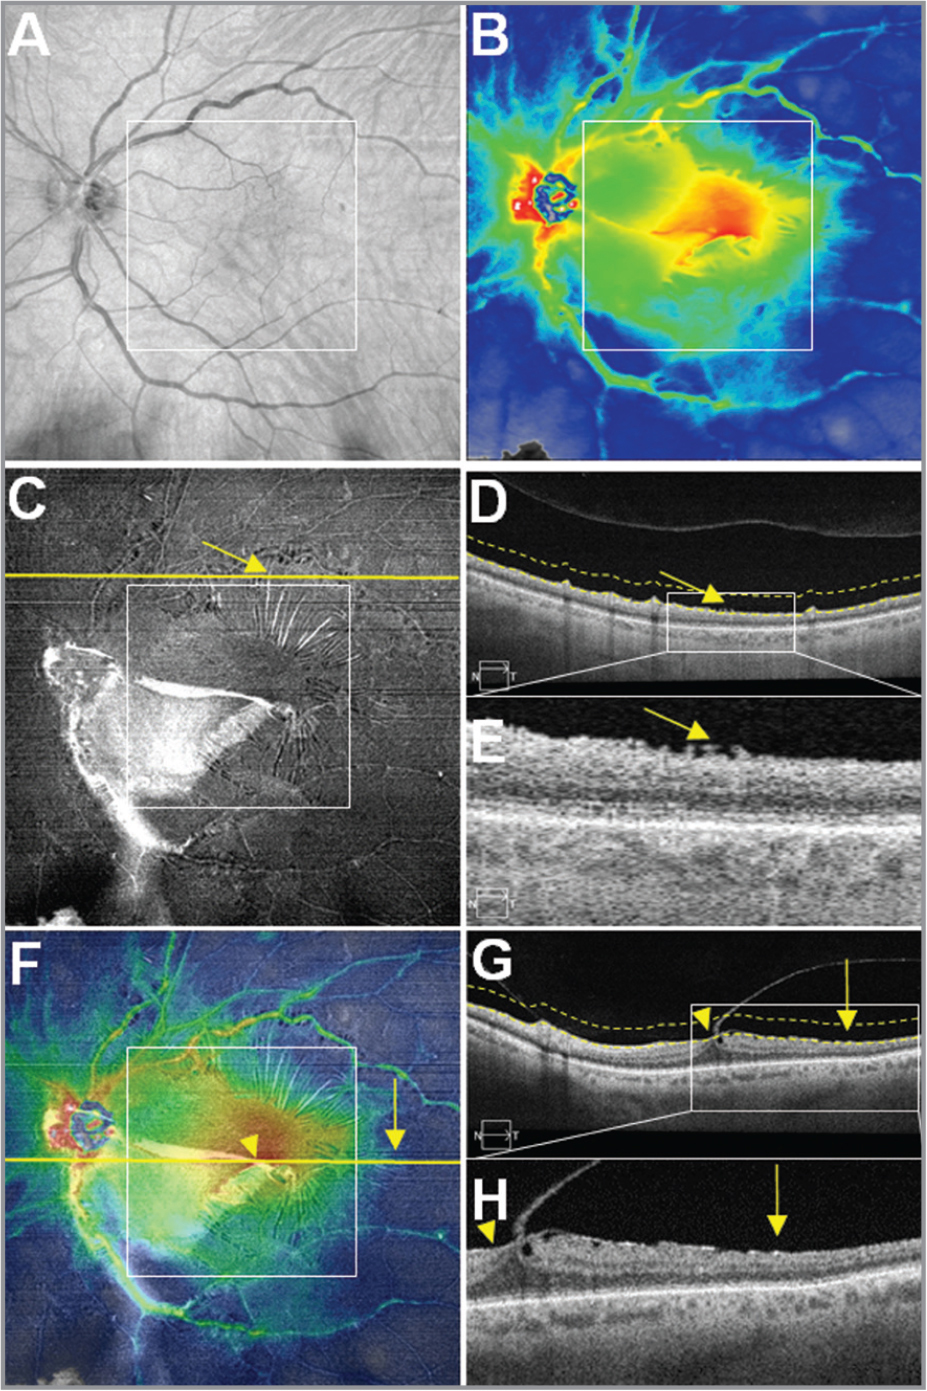 Case No. 4: Multi-segmented images from a single 12 mm × 12 mm swept-source optical coherence tomography (SS-OCT) scan of an epiretinal membrane (ERM) associated with incomplete posterior vitreous detachment (PVD) in the left eye of a 62-year-old man. The white square boxes centered on the fovea in panels A, B, C, and F represent a 6 mm × 6 mm field of view (FOV). (A) OCT fundus image. Observe the asymmetrical vessel tortuosity predominant in the superior arcade. (B) Retinal thickness map (RTM). Inspect the disturbances of macular thickness. (C) Vitreoretinal interface (VRI) en face image. The image shows a hyperreflective ERM, whereas posterior hyaloid associated with ERM is well-lighted in white. Yellow arrows in images C, D, and E emphasize the traction component of the ERM that leads to retinal folds. (D) B-scan corresponding to the yellow line outside the 6 mm × 6 mm white square shown in image C. Dashed lines define the upper and lower boundaries of the VRI en face slab. (E) Magnification of the white rectangle of the image D. This demonstrates the extent of the ERM outside the 6 mm × 6 mm FOV as well as retinal folds. (F) Overlay of Panel B (60% transparency) on top of Panel C. Yellow horizontal line represents the foveal B-scan. Yellow vertical arrow in Panels F, G, and H highlight the extent of the ERM outside 6 mm × 6 mm FOV. The fusion of the posterior hyaloid and ERM unveils intense hyperreflectivity. (G) Foveal B-scan. Dashed lines define the upper and lower boundaries of the VRI en face slab. (H) Magnified B-scan from within the white square shown in Panel G. The ERM extends from inside the 6 mm × 6 mm FOV (yellow arrowhead) to outside the 6 mm × 6 mm FOV (yellow vertical arrow). Observe the inverted foveal depression associated with intraretinal cystic spaces, presence of ERM in the temporal side and in the nasal side posterior vitreous adherence associated with ERM enhancing hyperreflectivity and incomplete PVD.